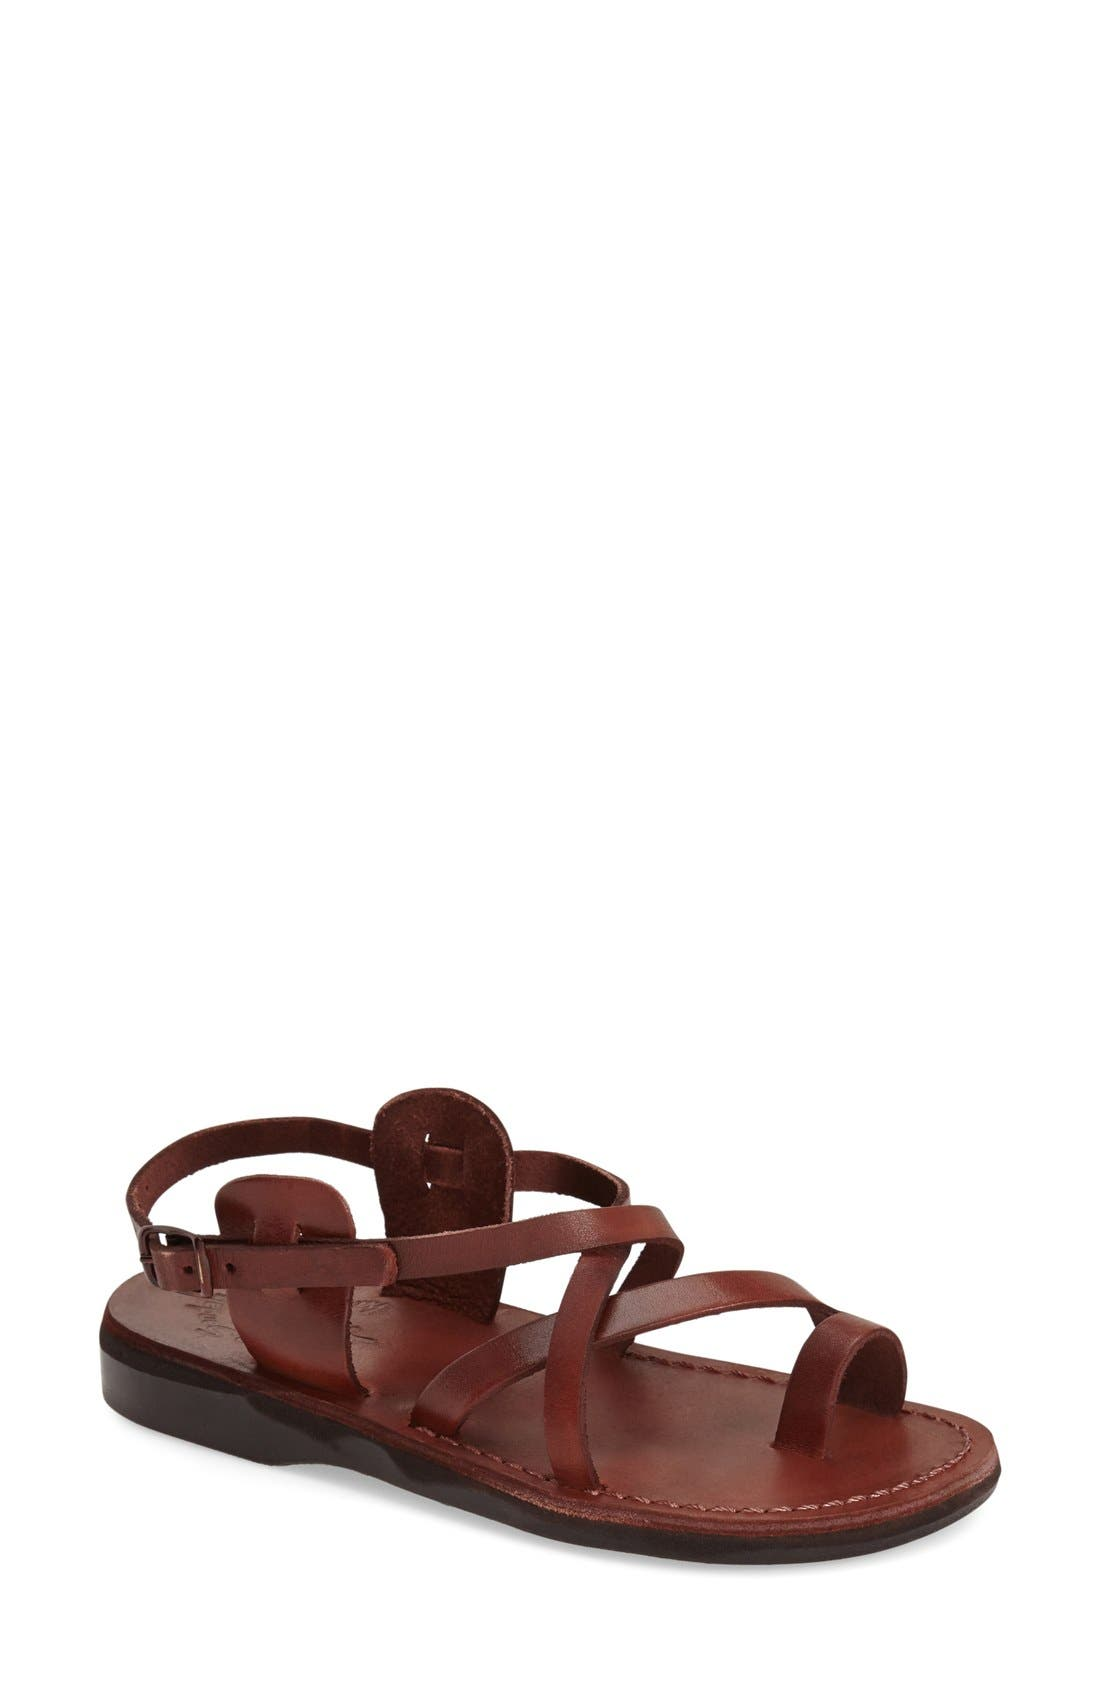 'The Good Shepard' Strappy Sandal,                         Main,                         color, Brown Leather